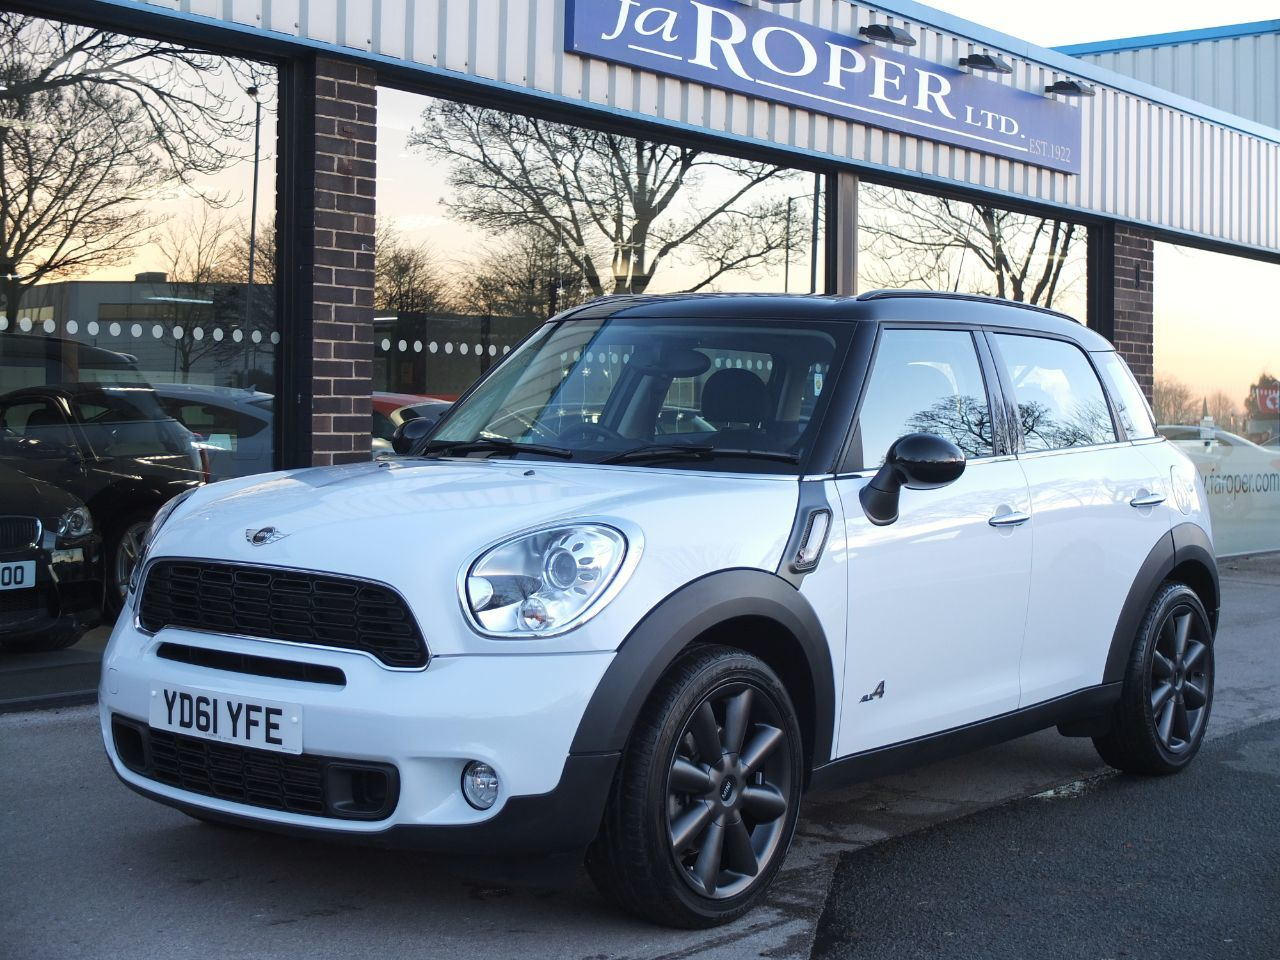 Mini Countryman 2.0 Cooper SD ALL4 Auto Chili Pack Hatchback Diesel Light WhiteMini Countryman 2.0 Cooper SD ALL4 Auto Chili Pack Hatchback Diesel Light White at fa Roper Ltd Bradford